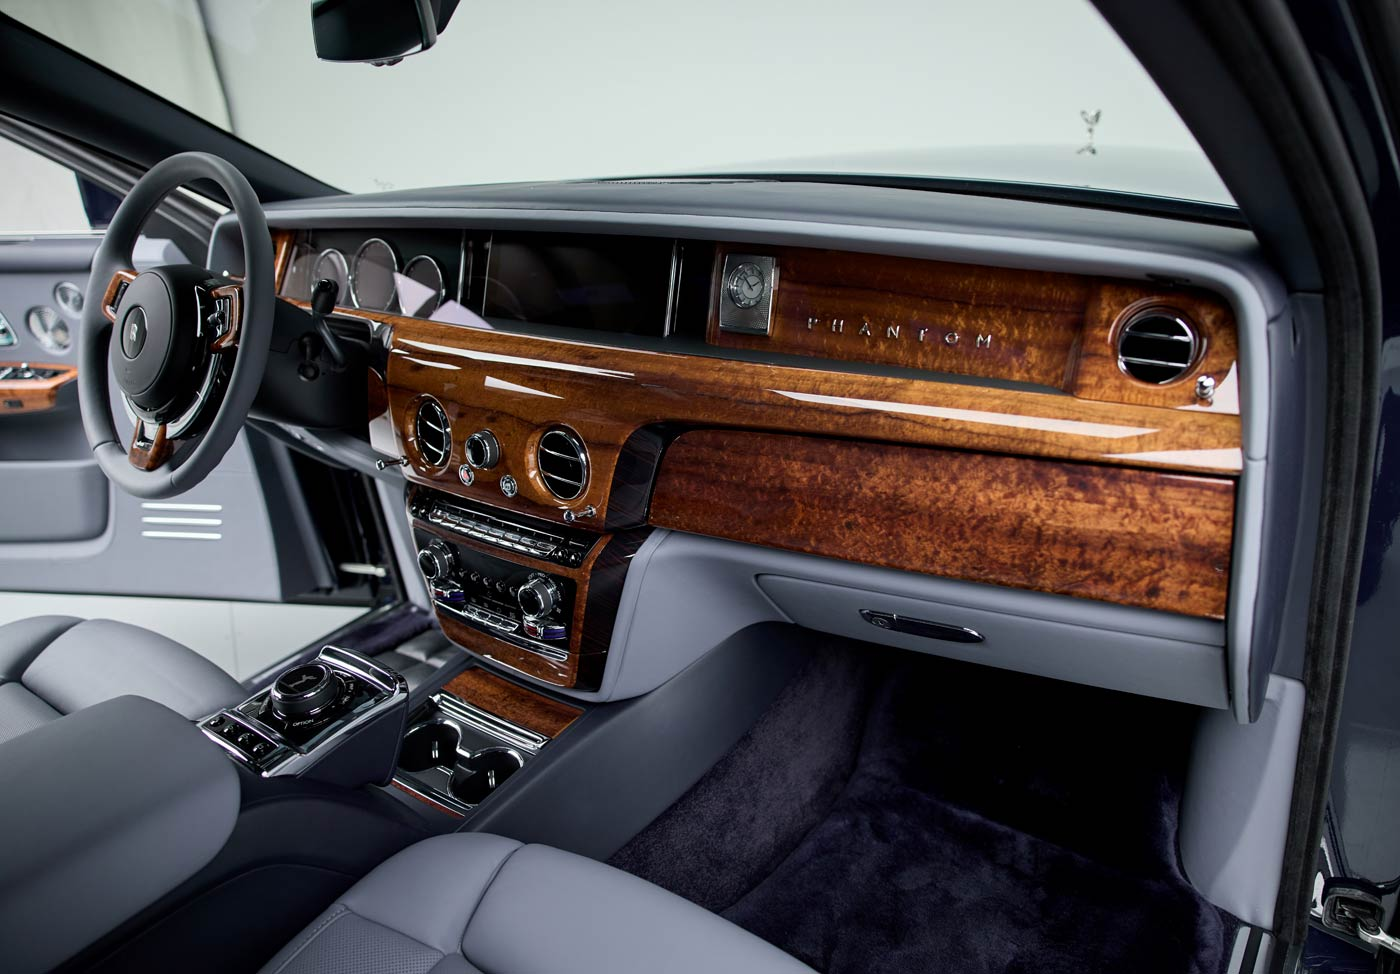 2021 Rolls-Royce Phantom Extended - The JBS Collection